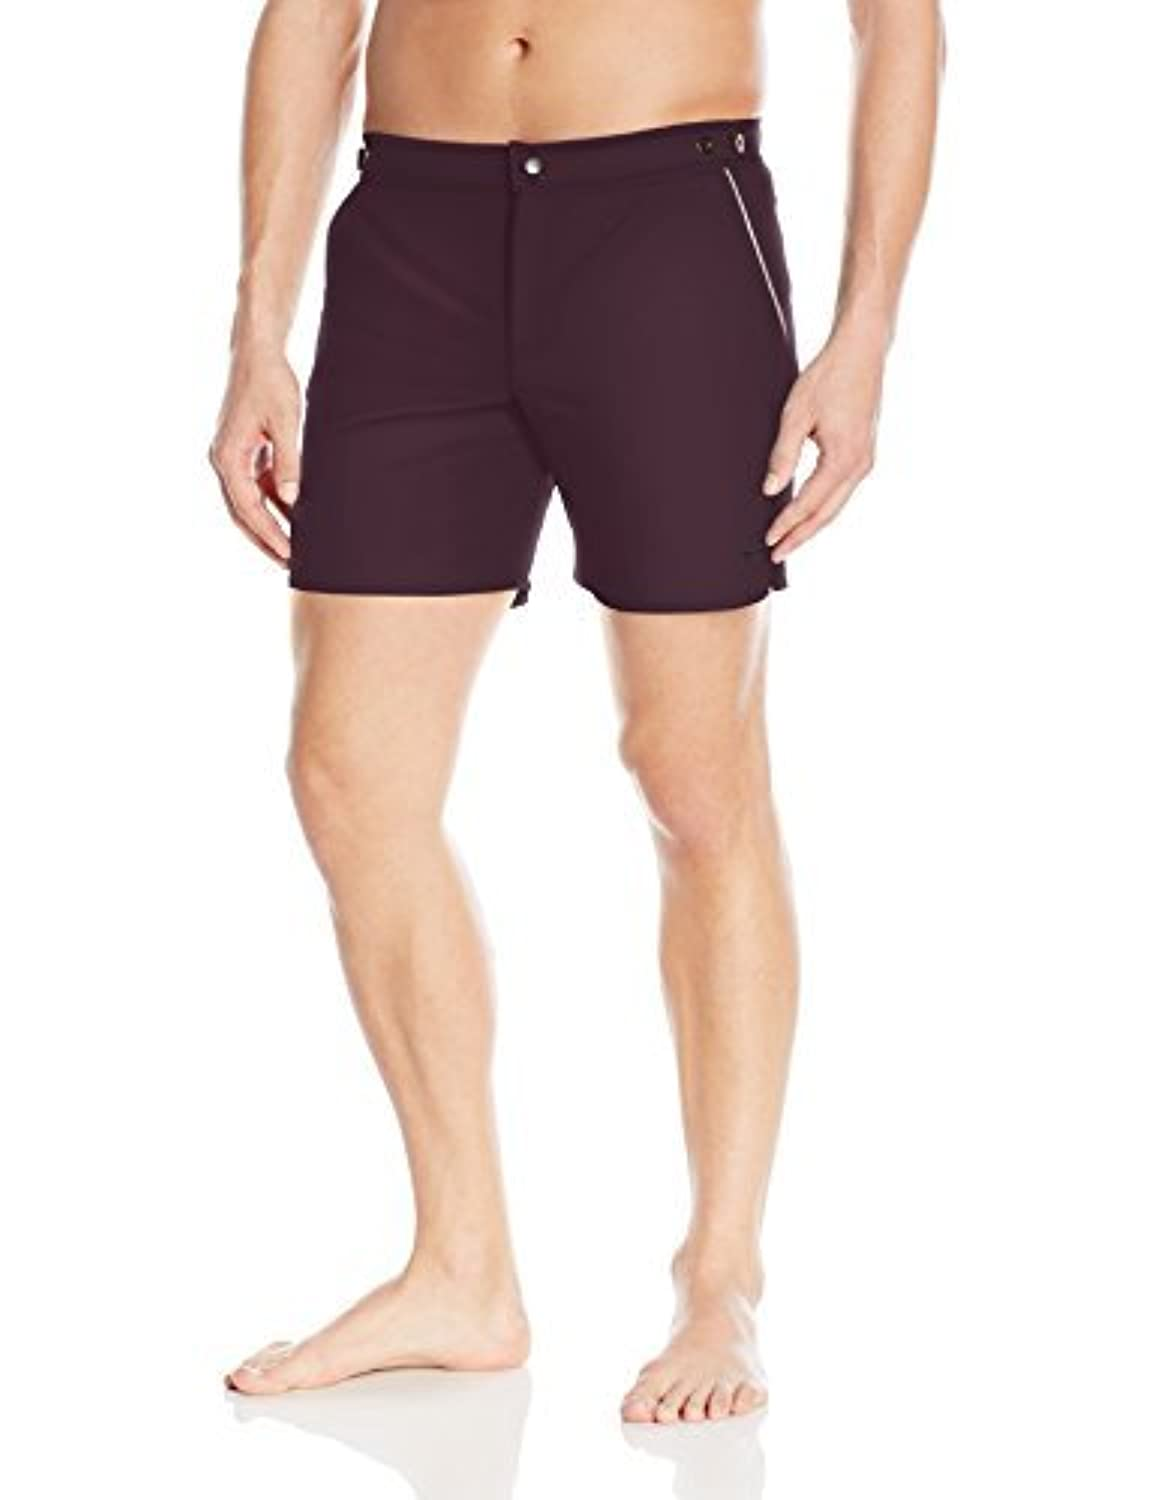 parke & ronen Men's Angeleno Stretch Swim Trunk Aubergine/Grey 32 [並行輸入品]